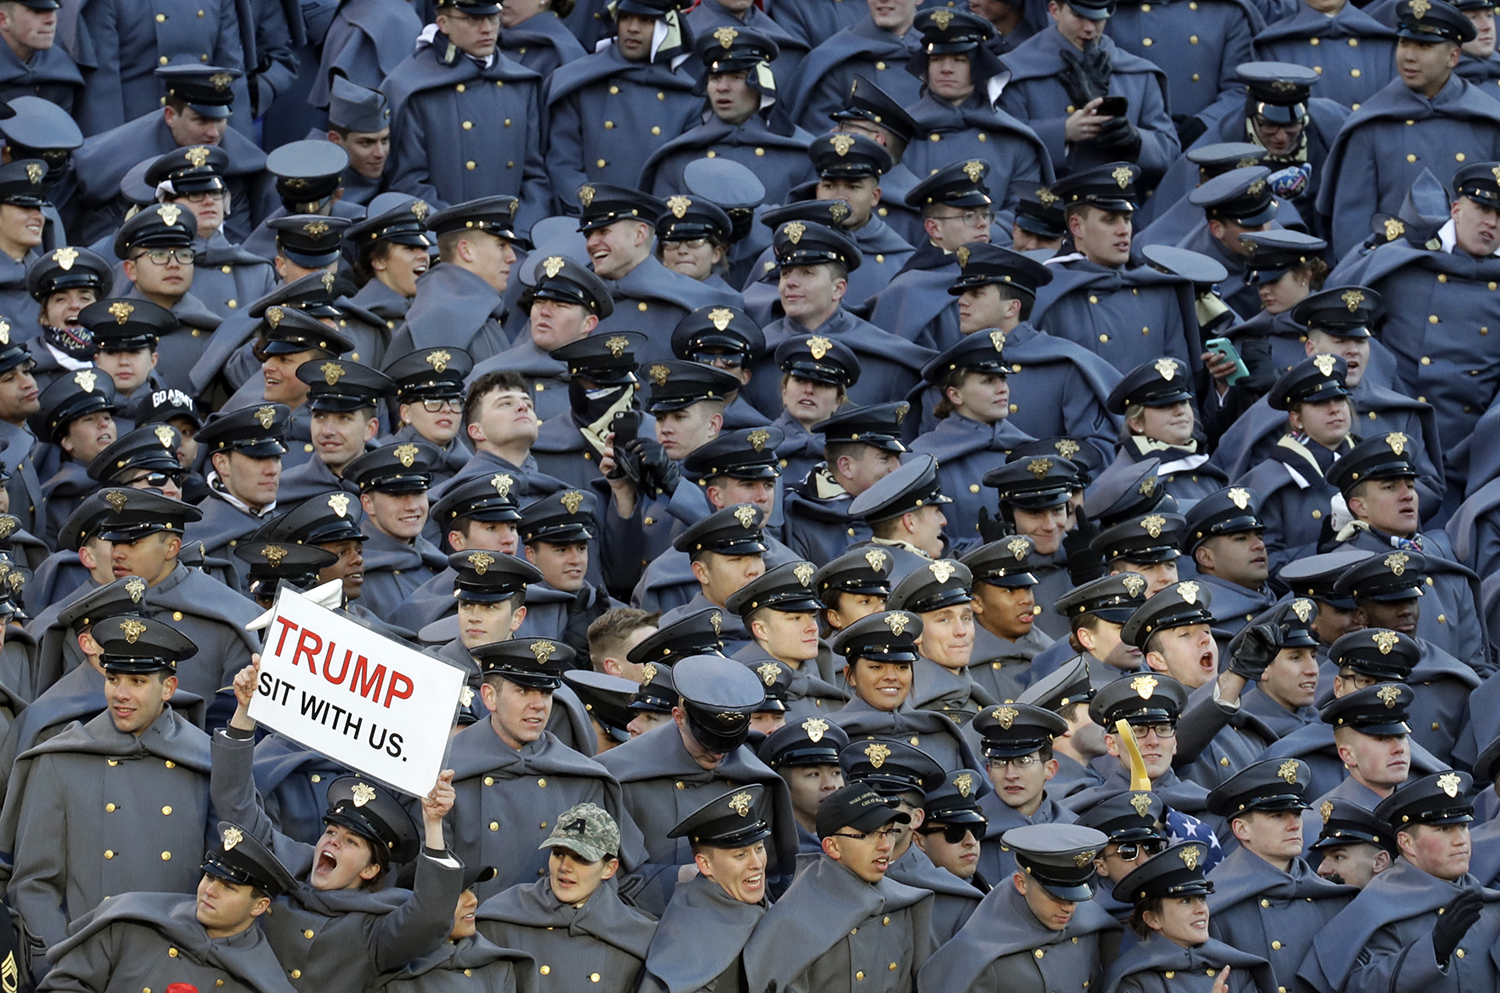 An Army Cadet displays a sign for President-elect Donald Trump during the first half of the Army-Navy NCAA college football game in Baltimore, Saturday, Dec. 10, 2016. (AP Photo/Patrick Semansky)